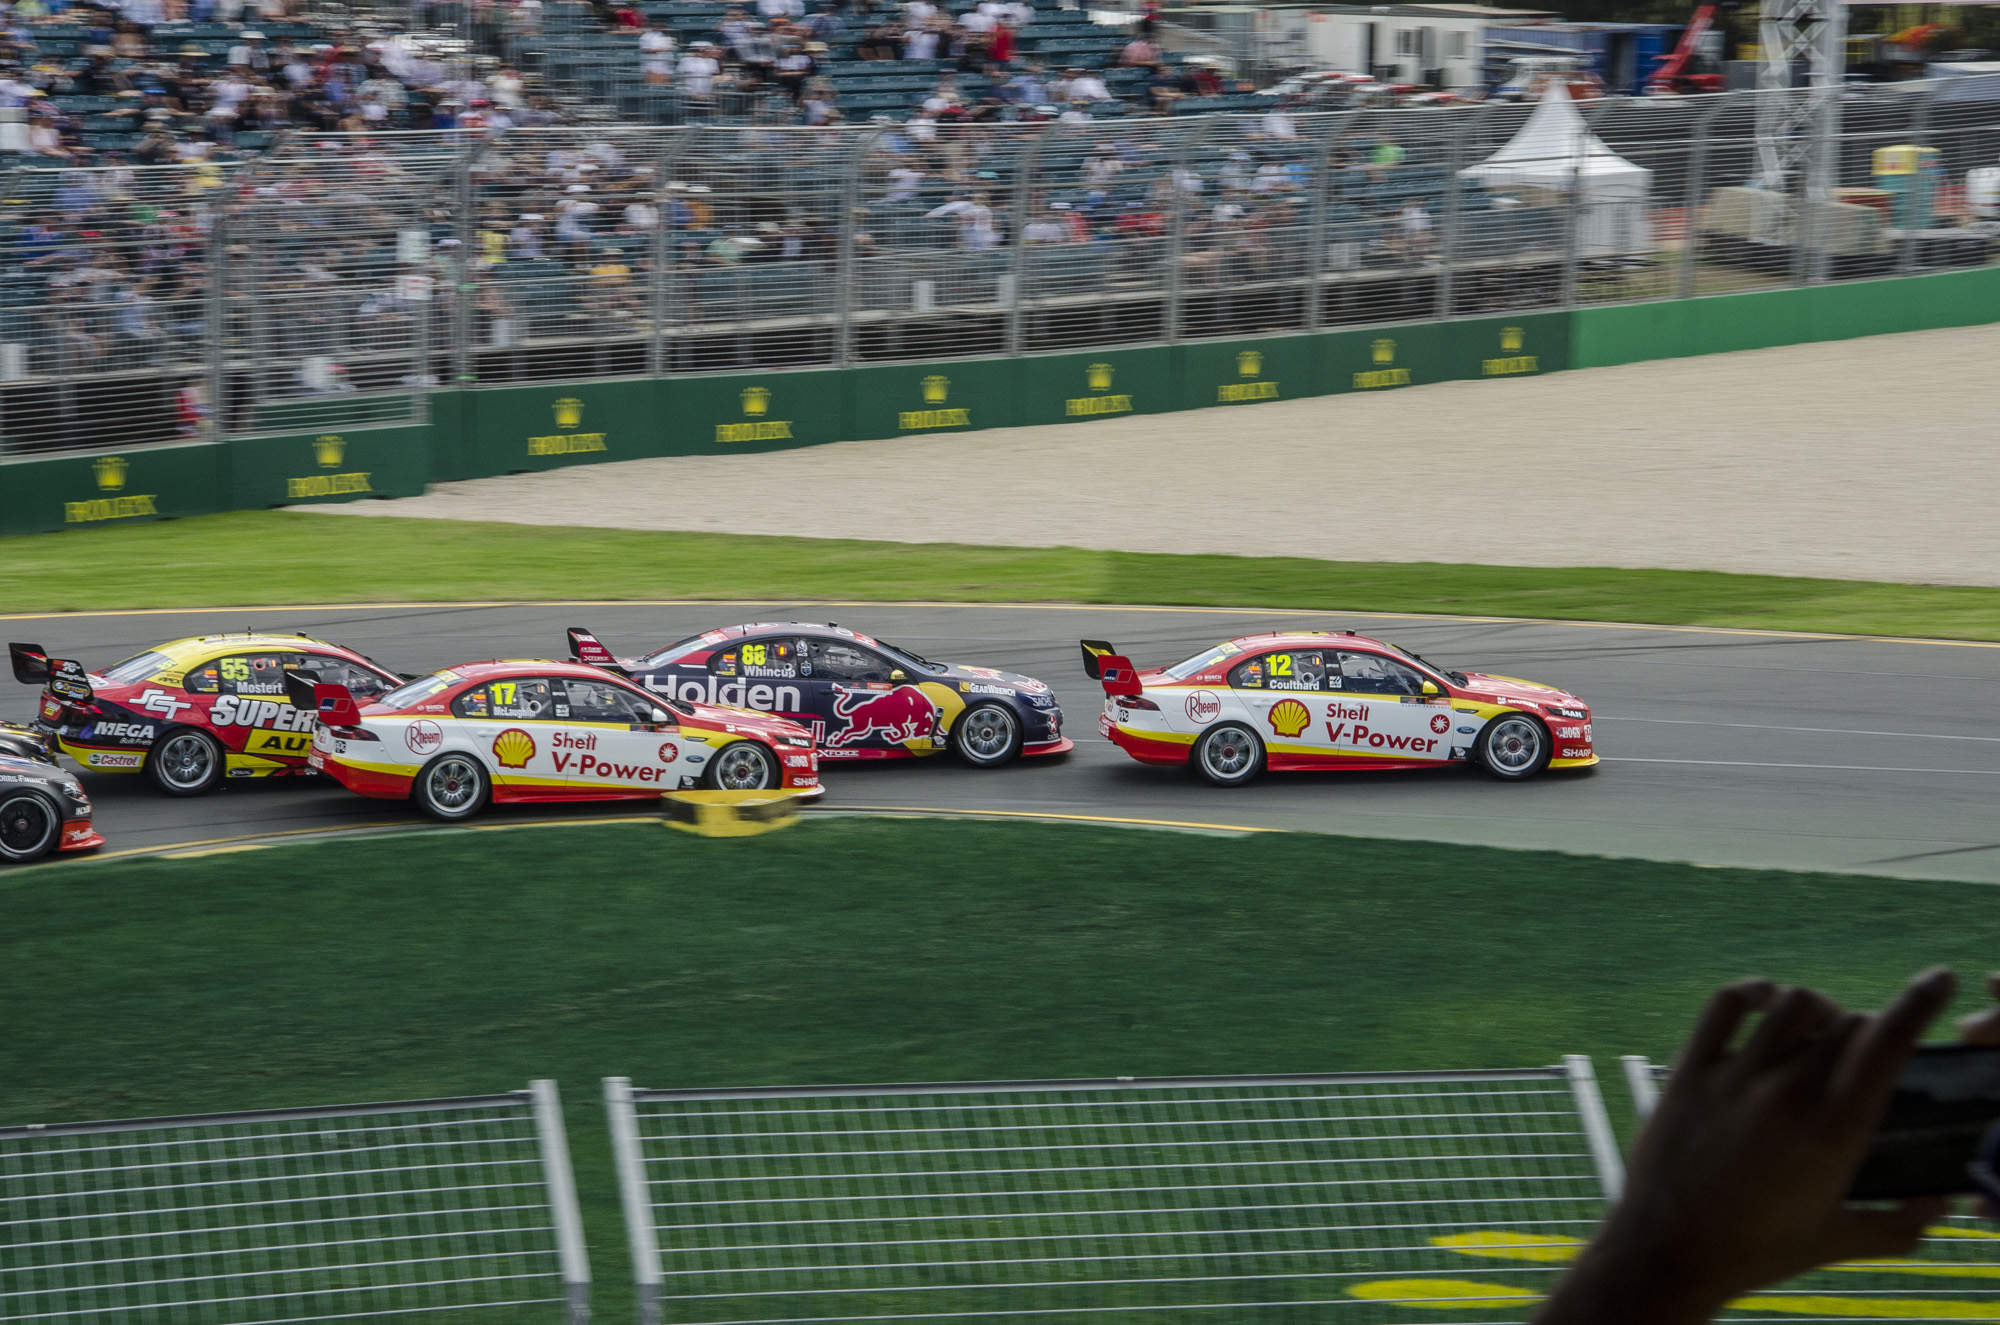 Redbull racing Commodore driven by Jamie Whincup up against the Shell V-power Falcons with Fabian Coulthard in the lead at turn 1 of the 2017 Melbourne F1GP